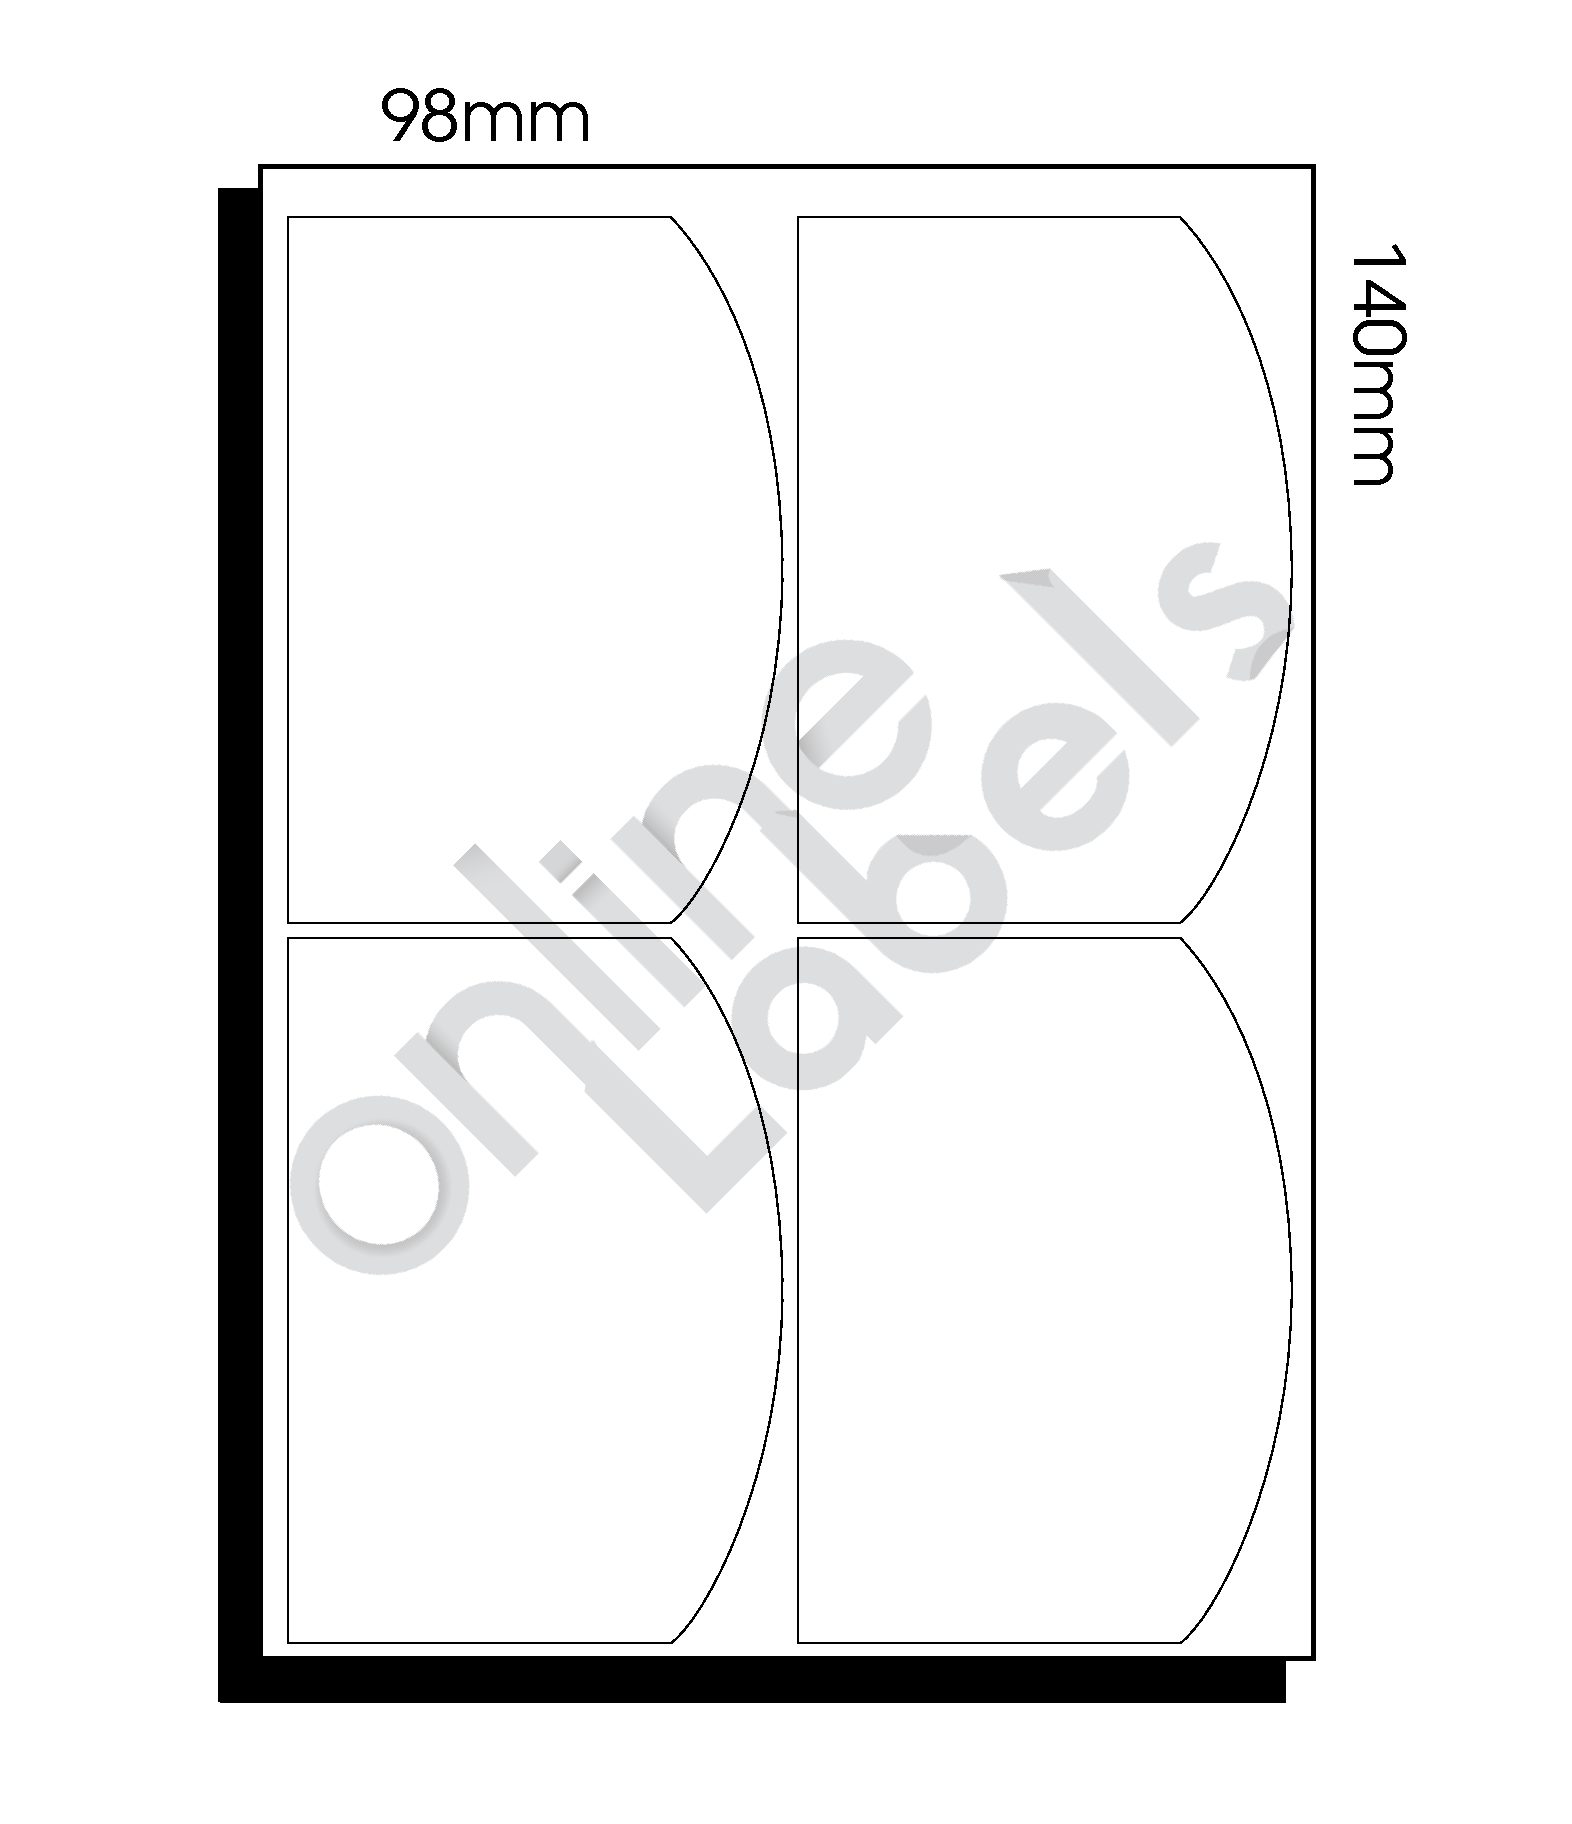 98mm x 140mm (097) – 4 Labels per Sheet